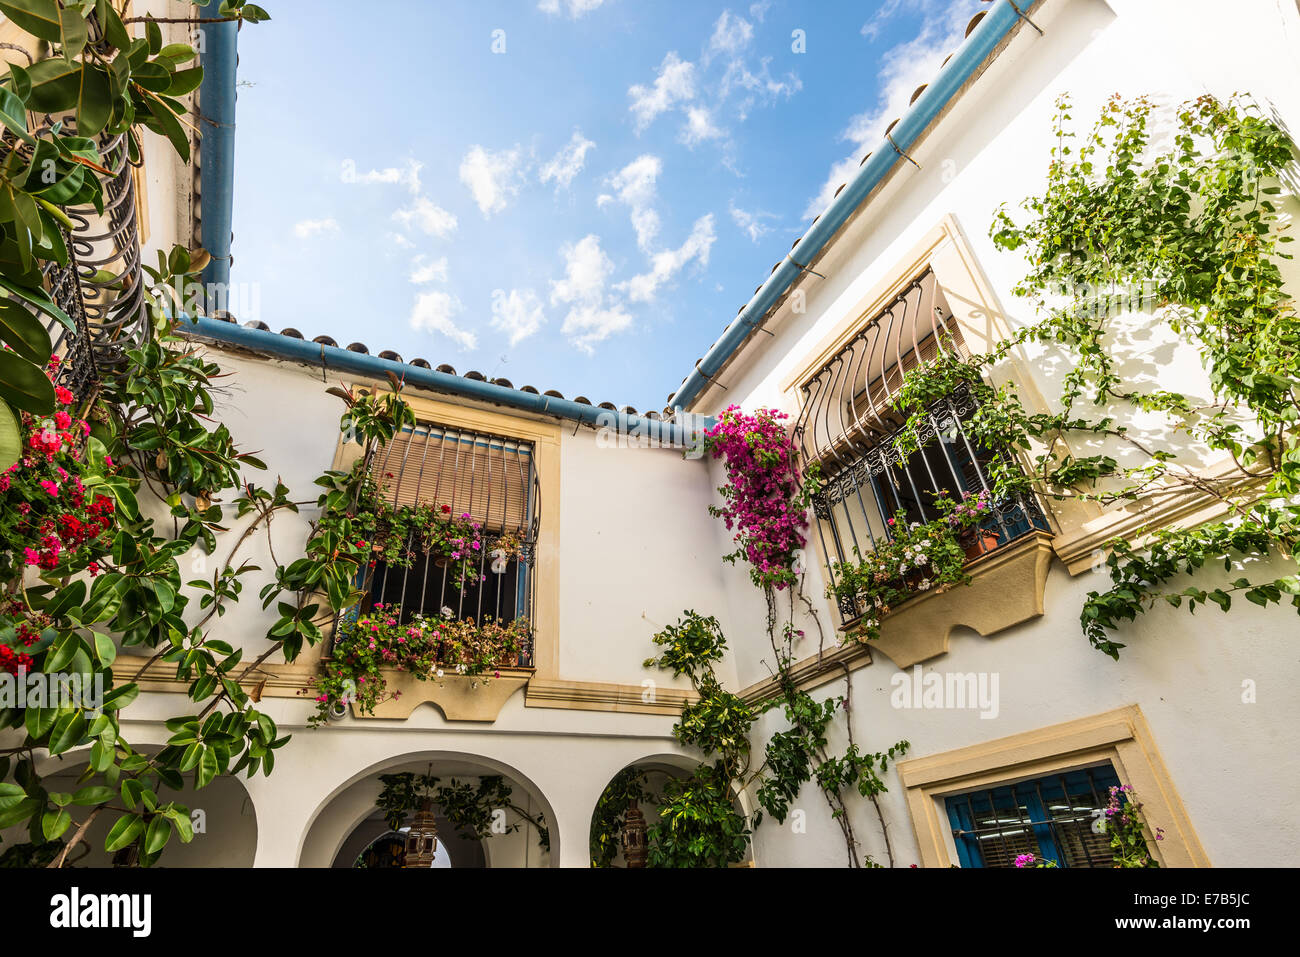 Typical inner court in Cordoba, Andalusia, declared Intangible Heritage of Humanity declared by UNESCO - Stock Image